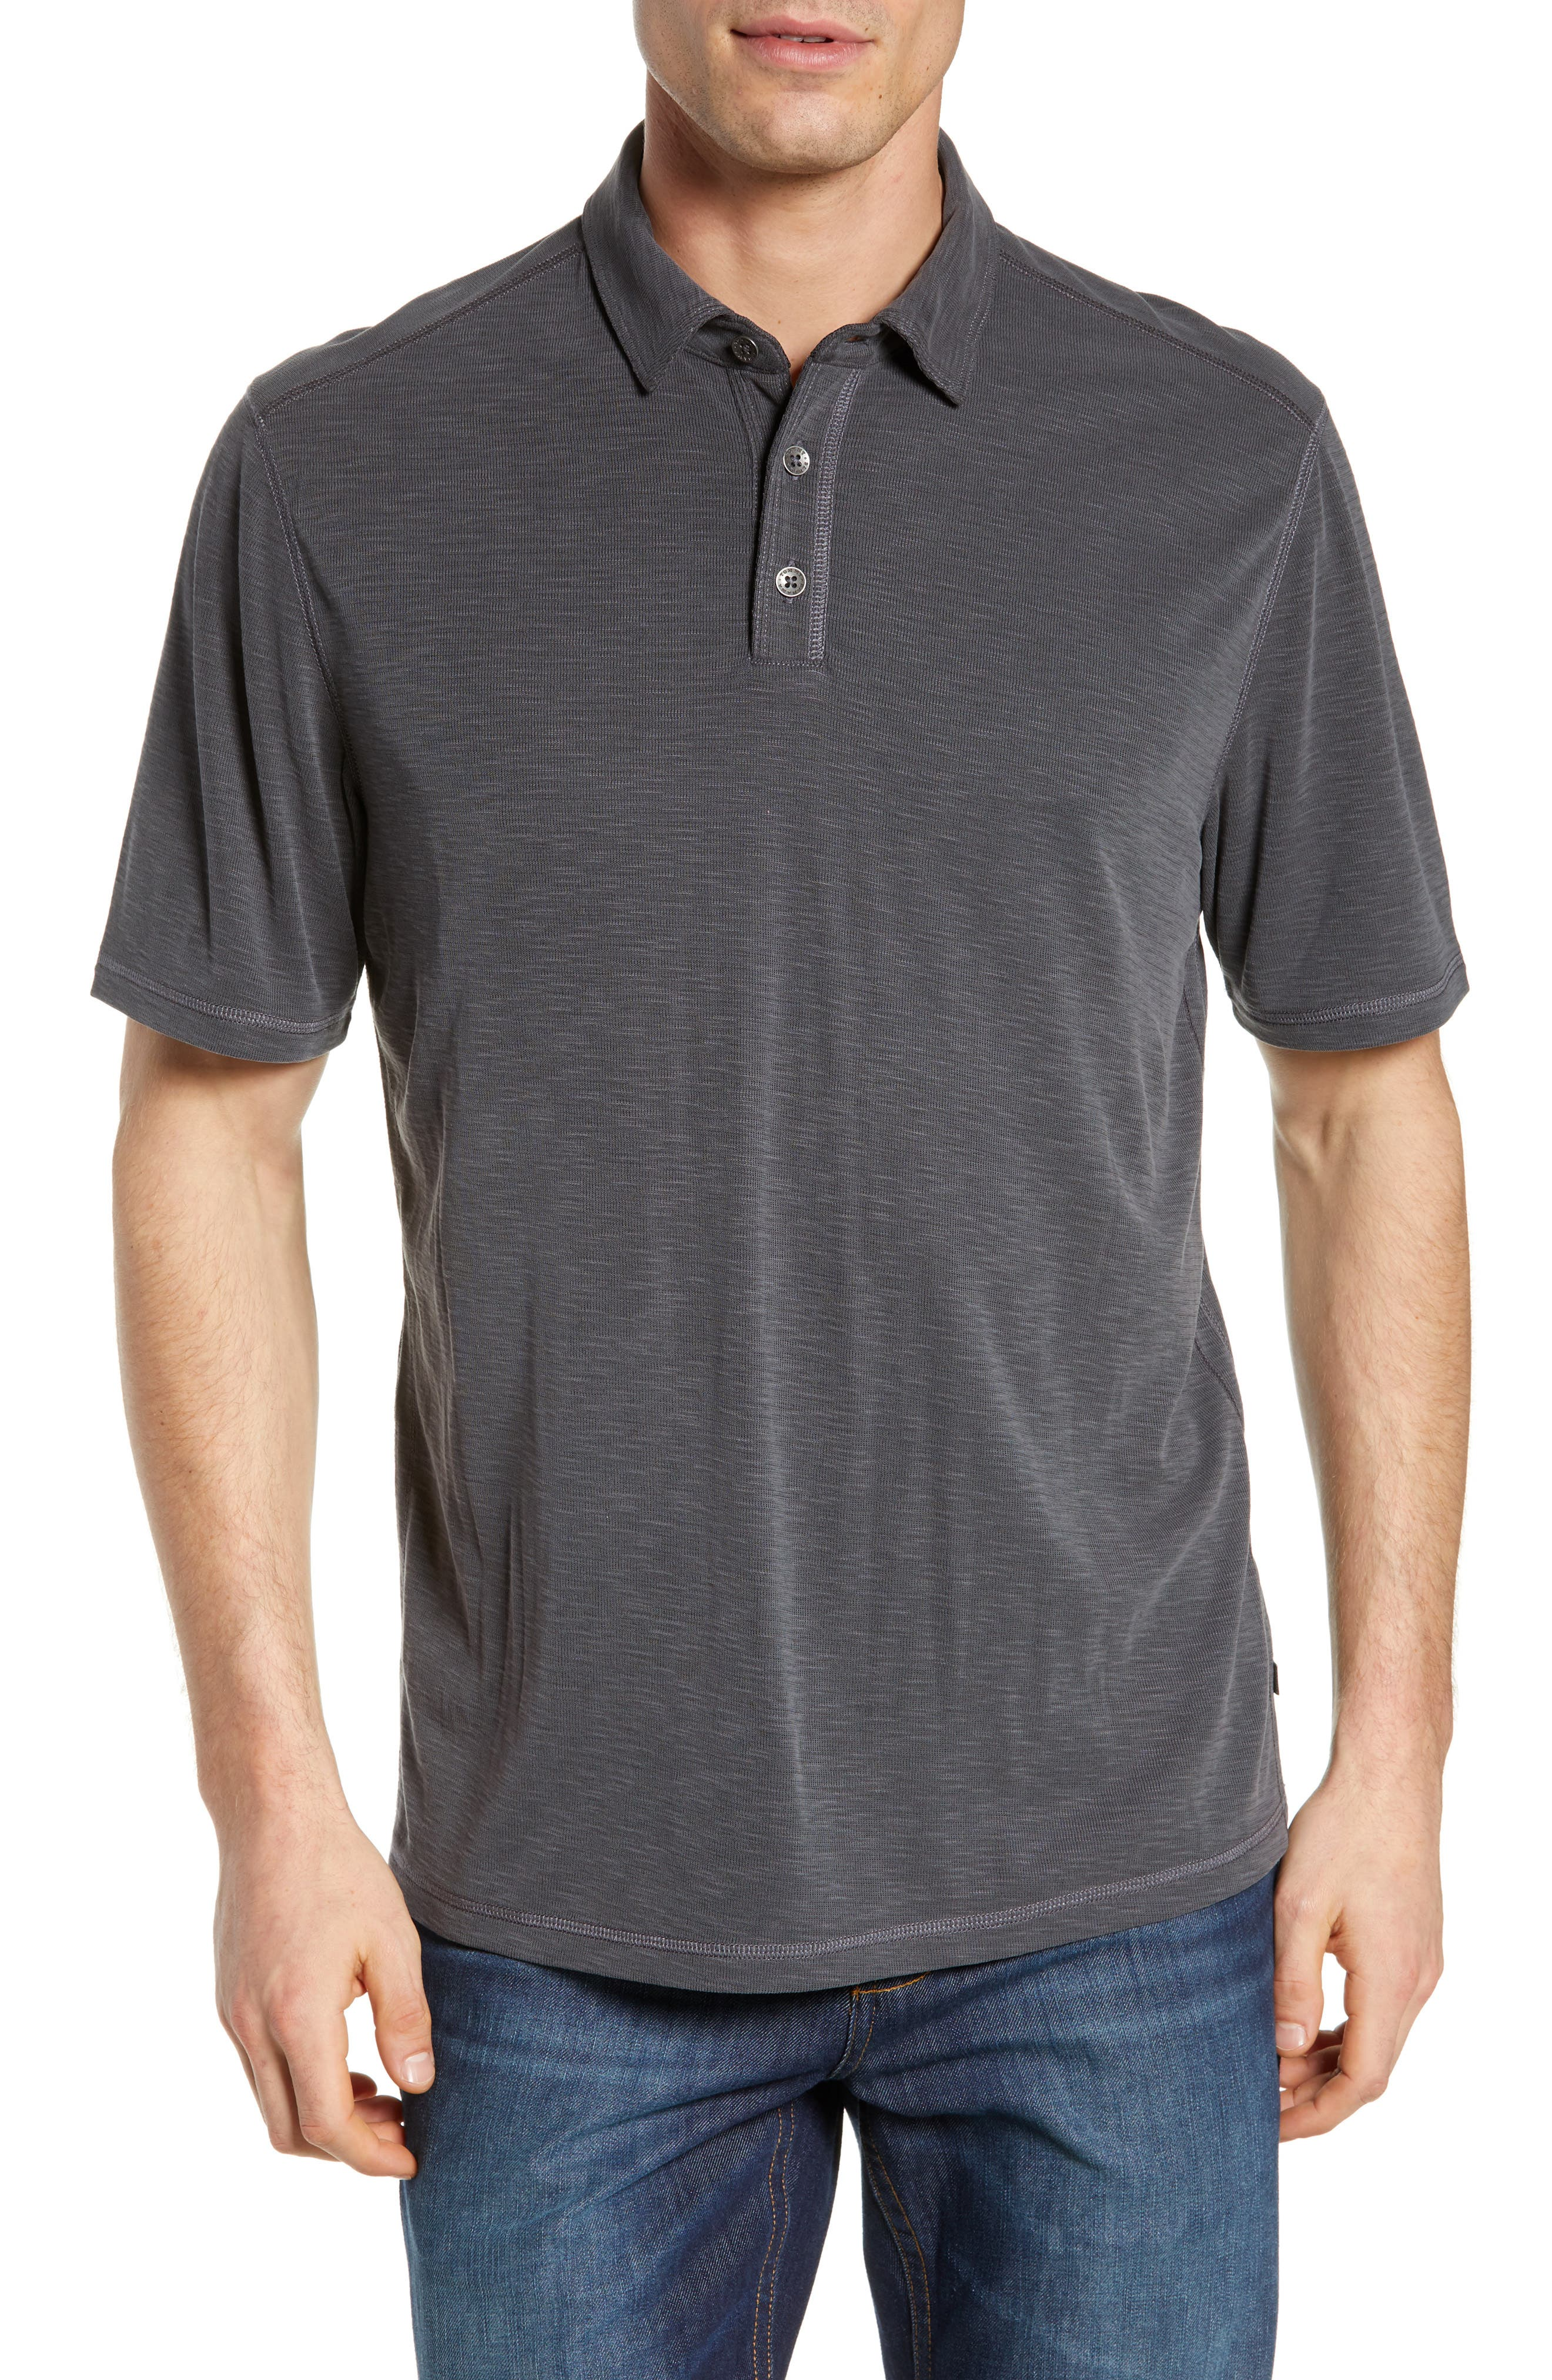 TOMMY BAHAMA Flip Tide Spectator Polo, Main, color, BLACK